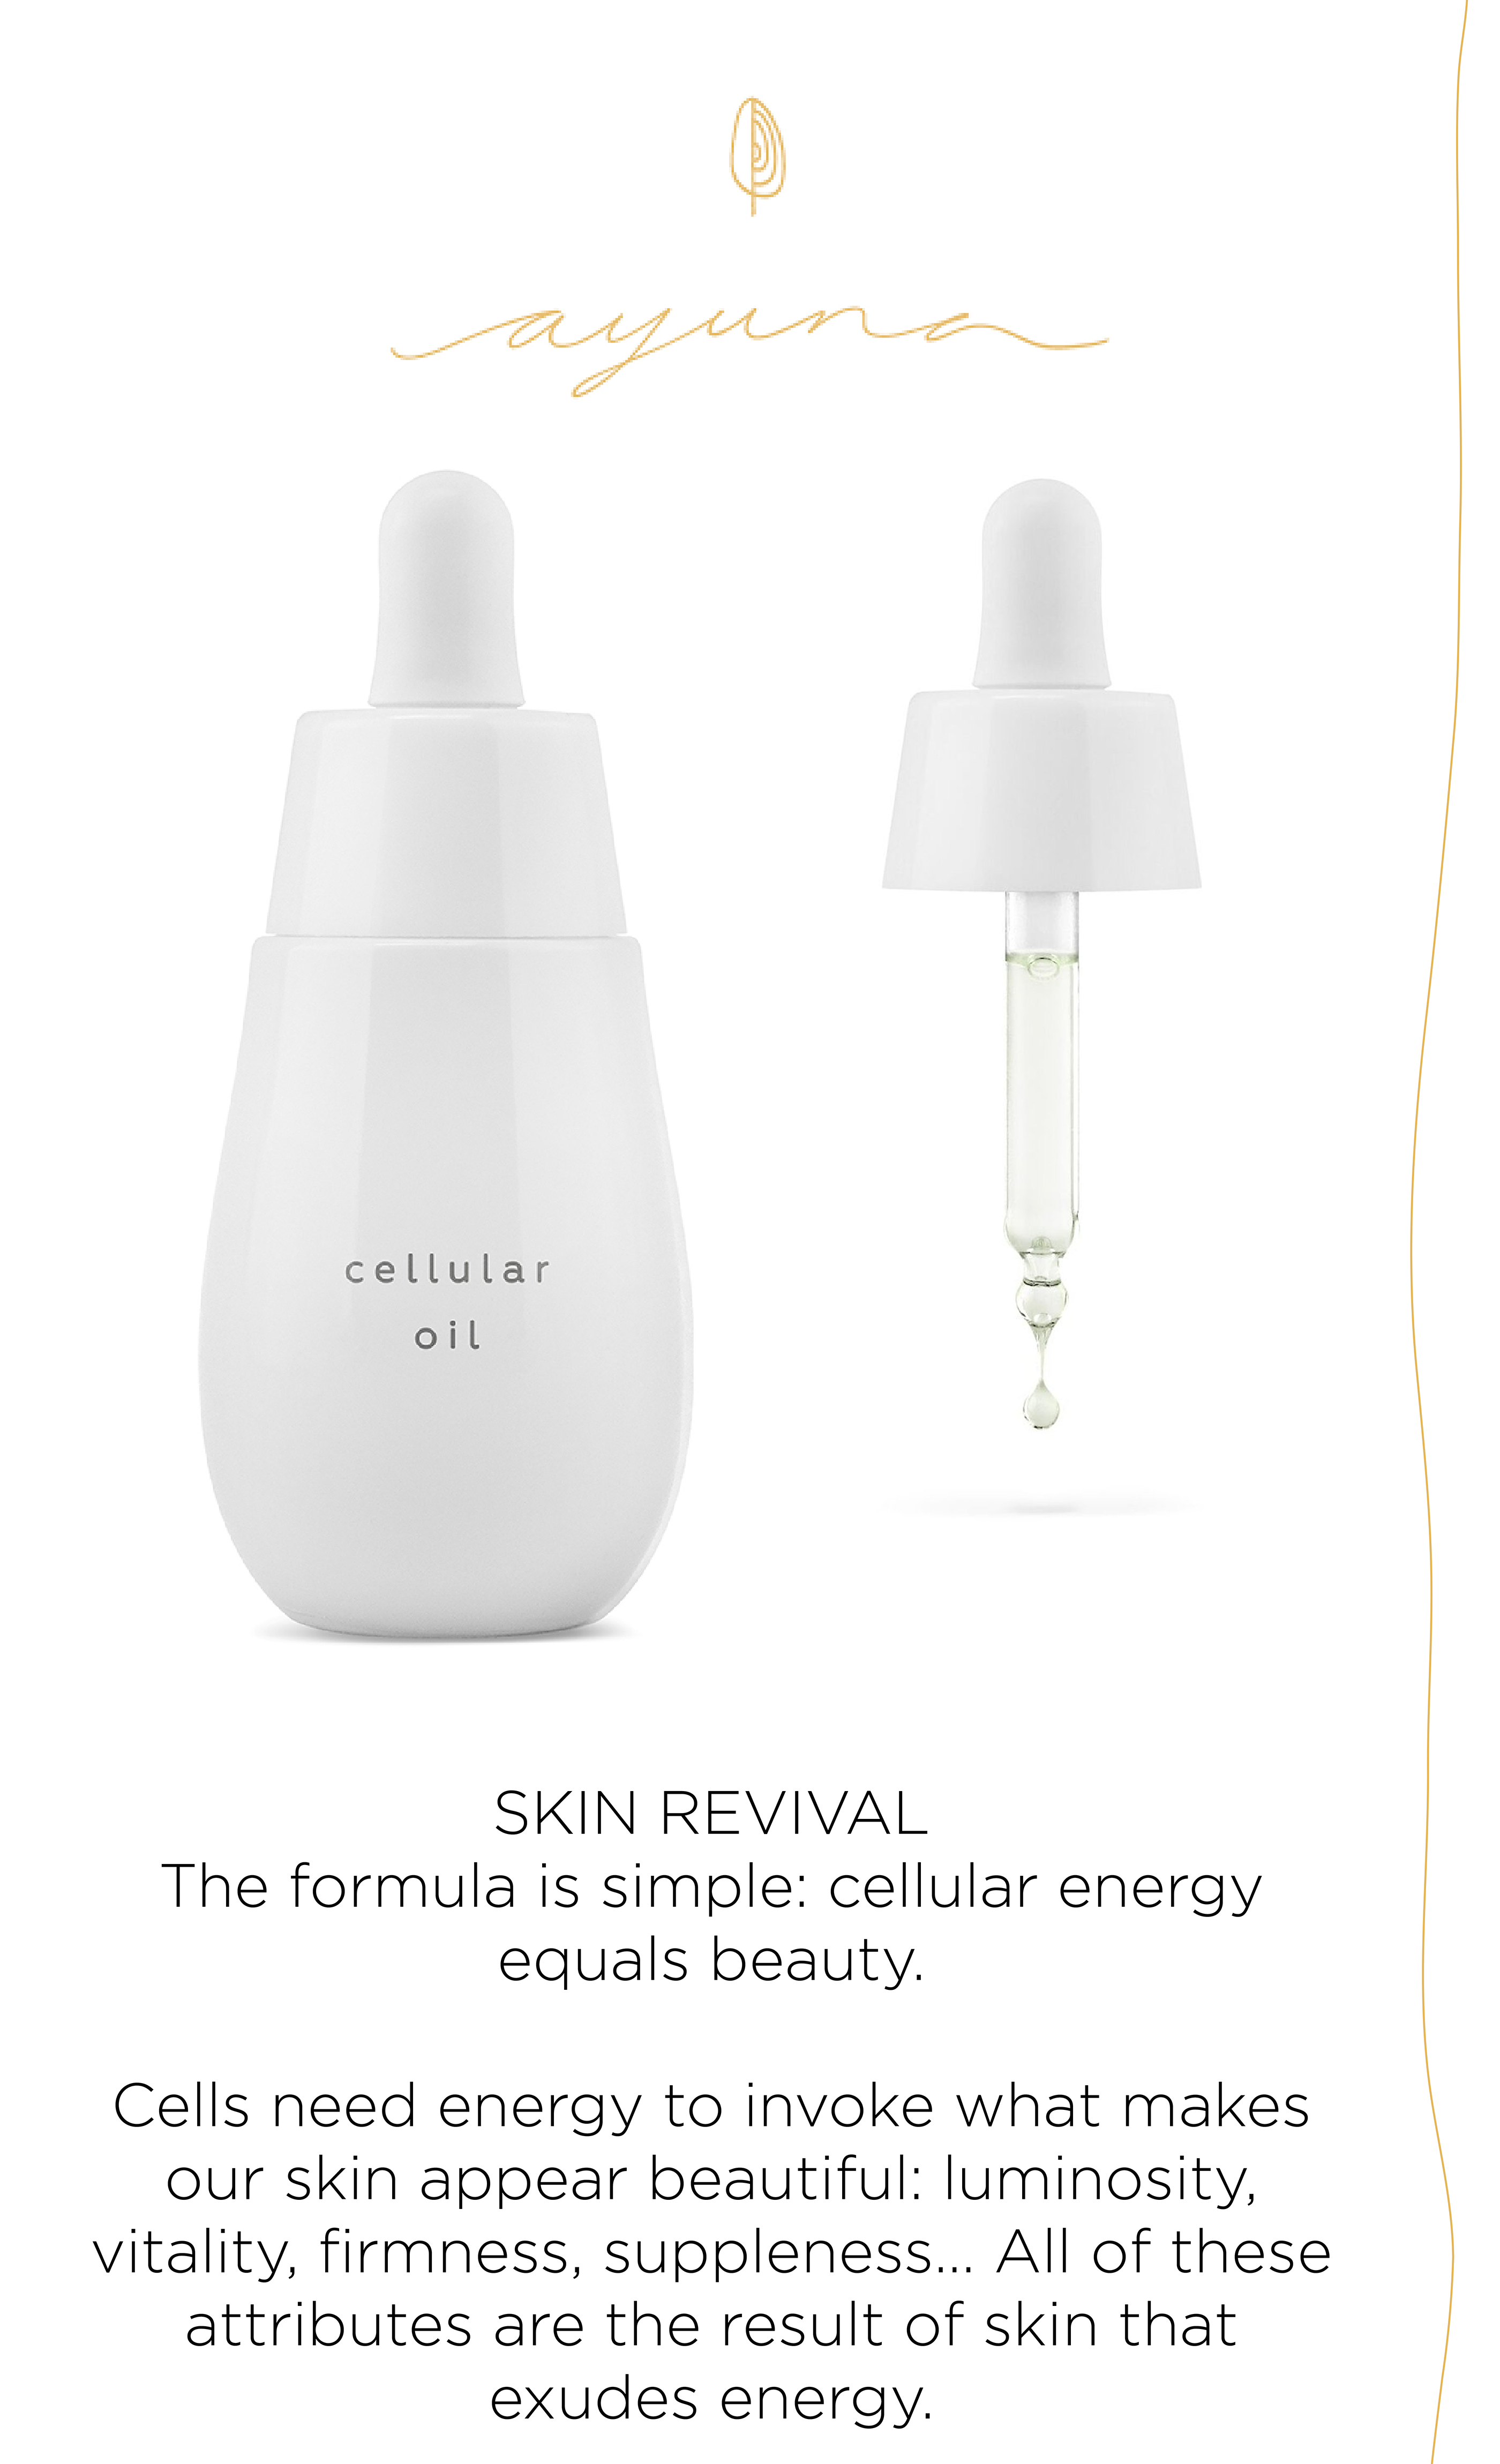 Ayuna - SKIN REVIVAL The formula is simple: cellular energy equals beauty. Cells need energy to invoke what makes our skin appear beautiful: luminosity, vitality, firmness, suppleness… All of these attributes are the result of skin that exudes energy.